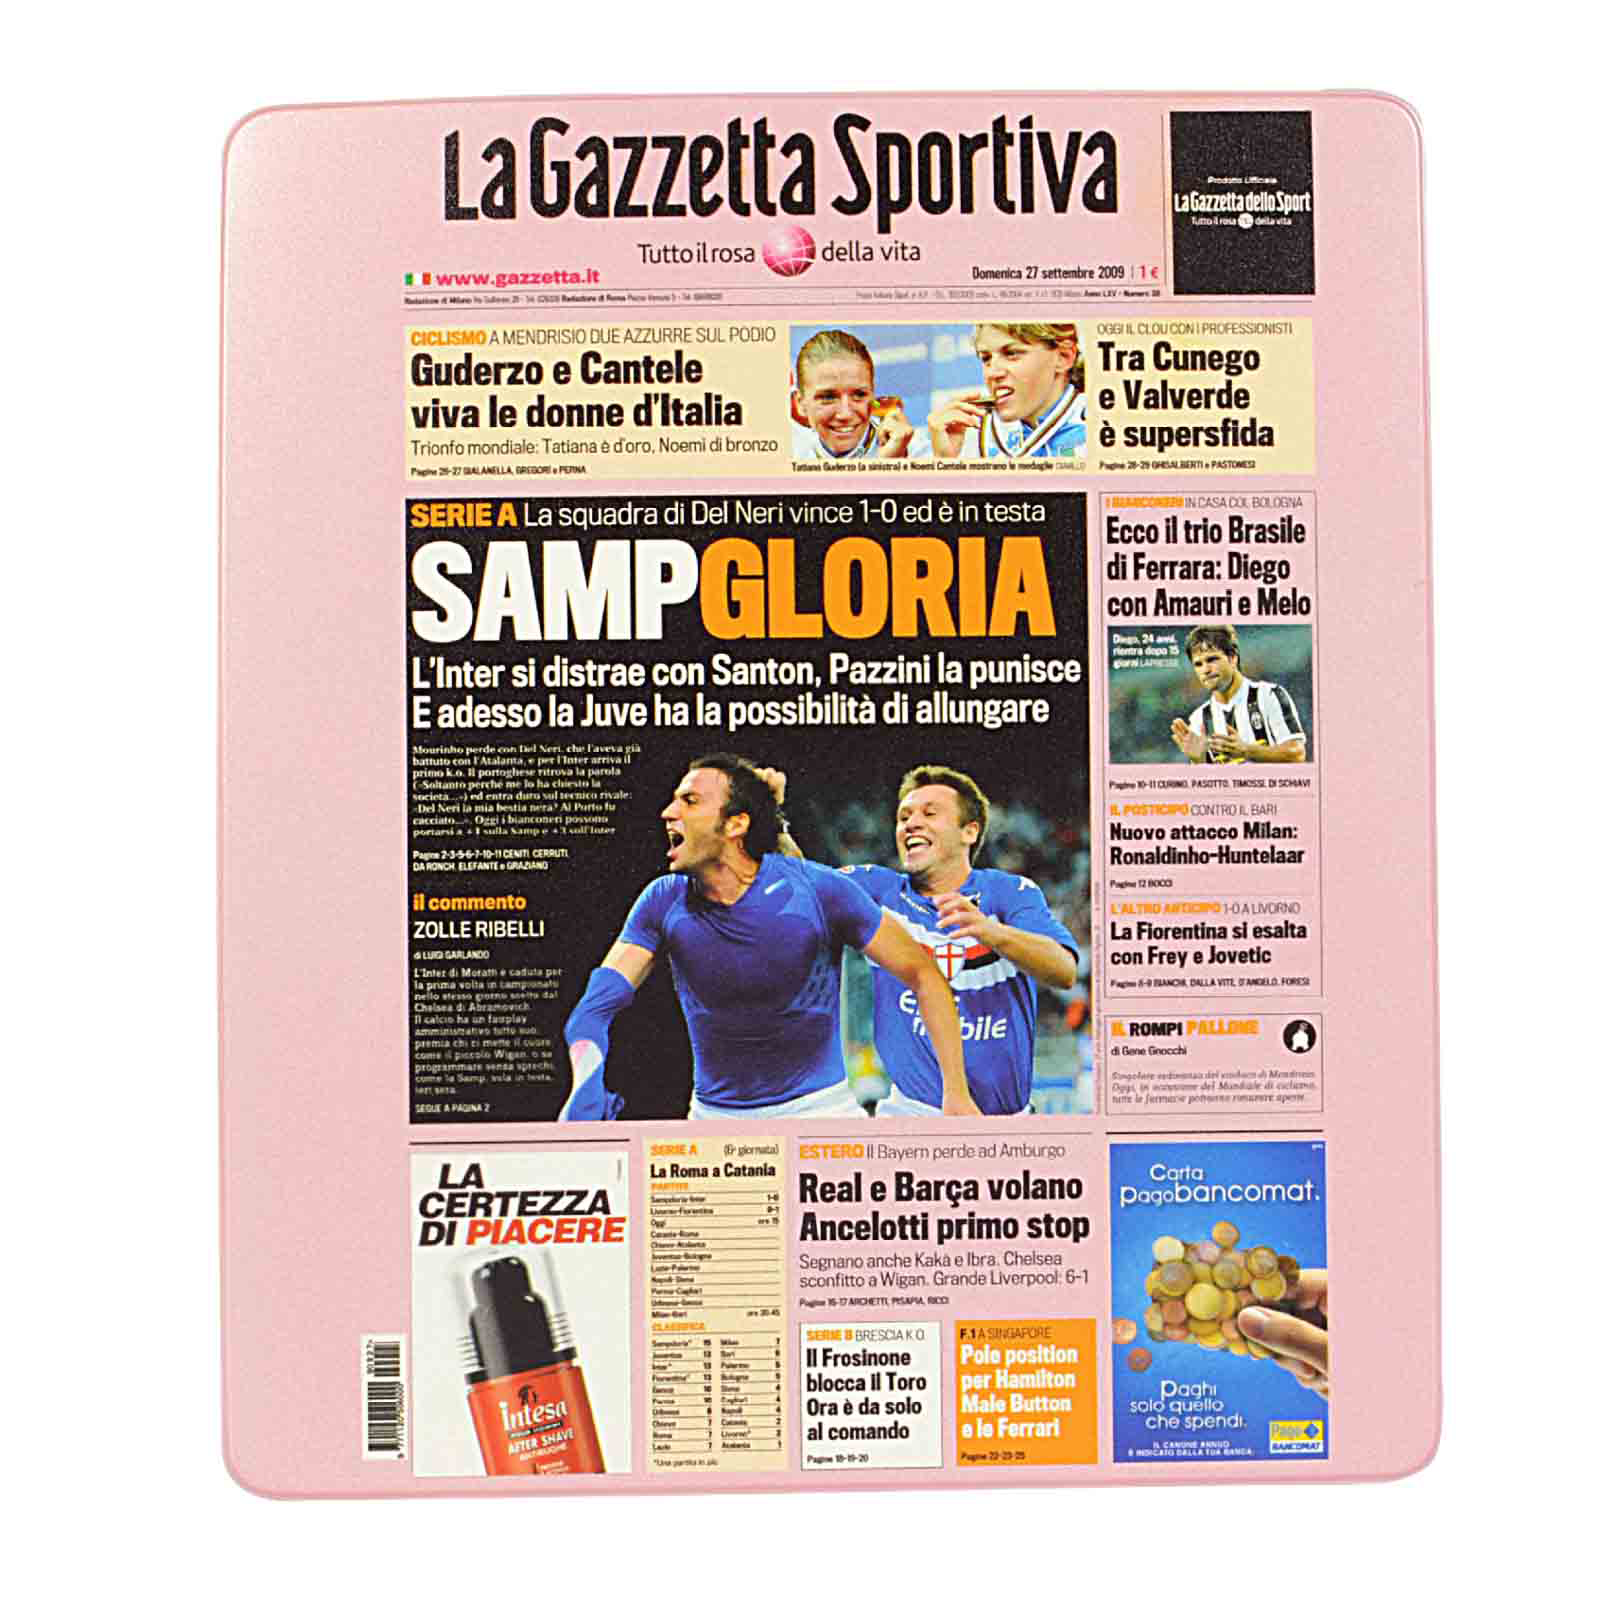 Mousepad Sampdoria